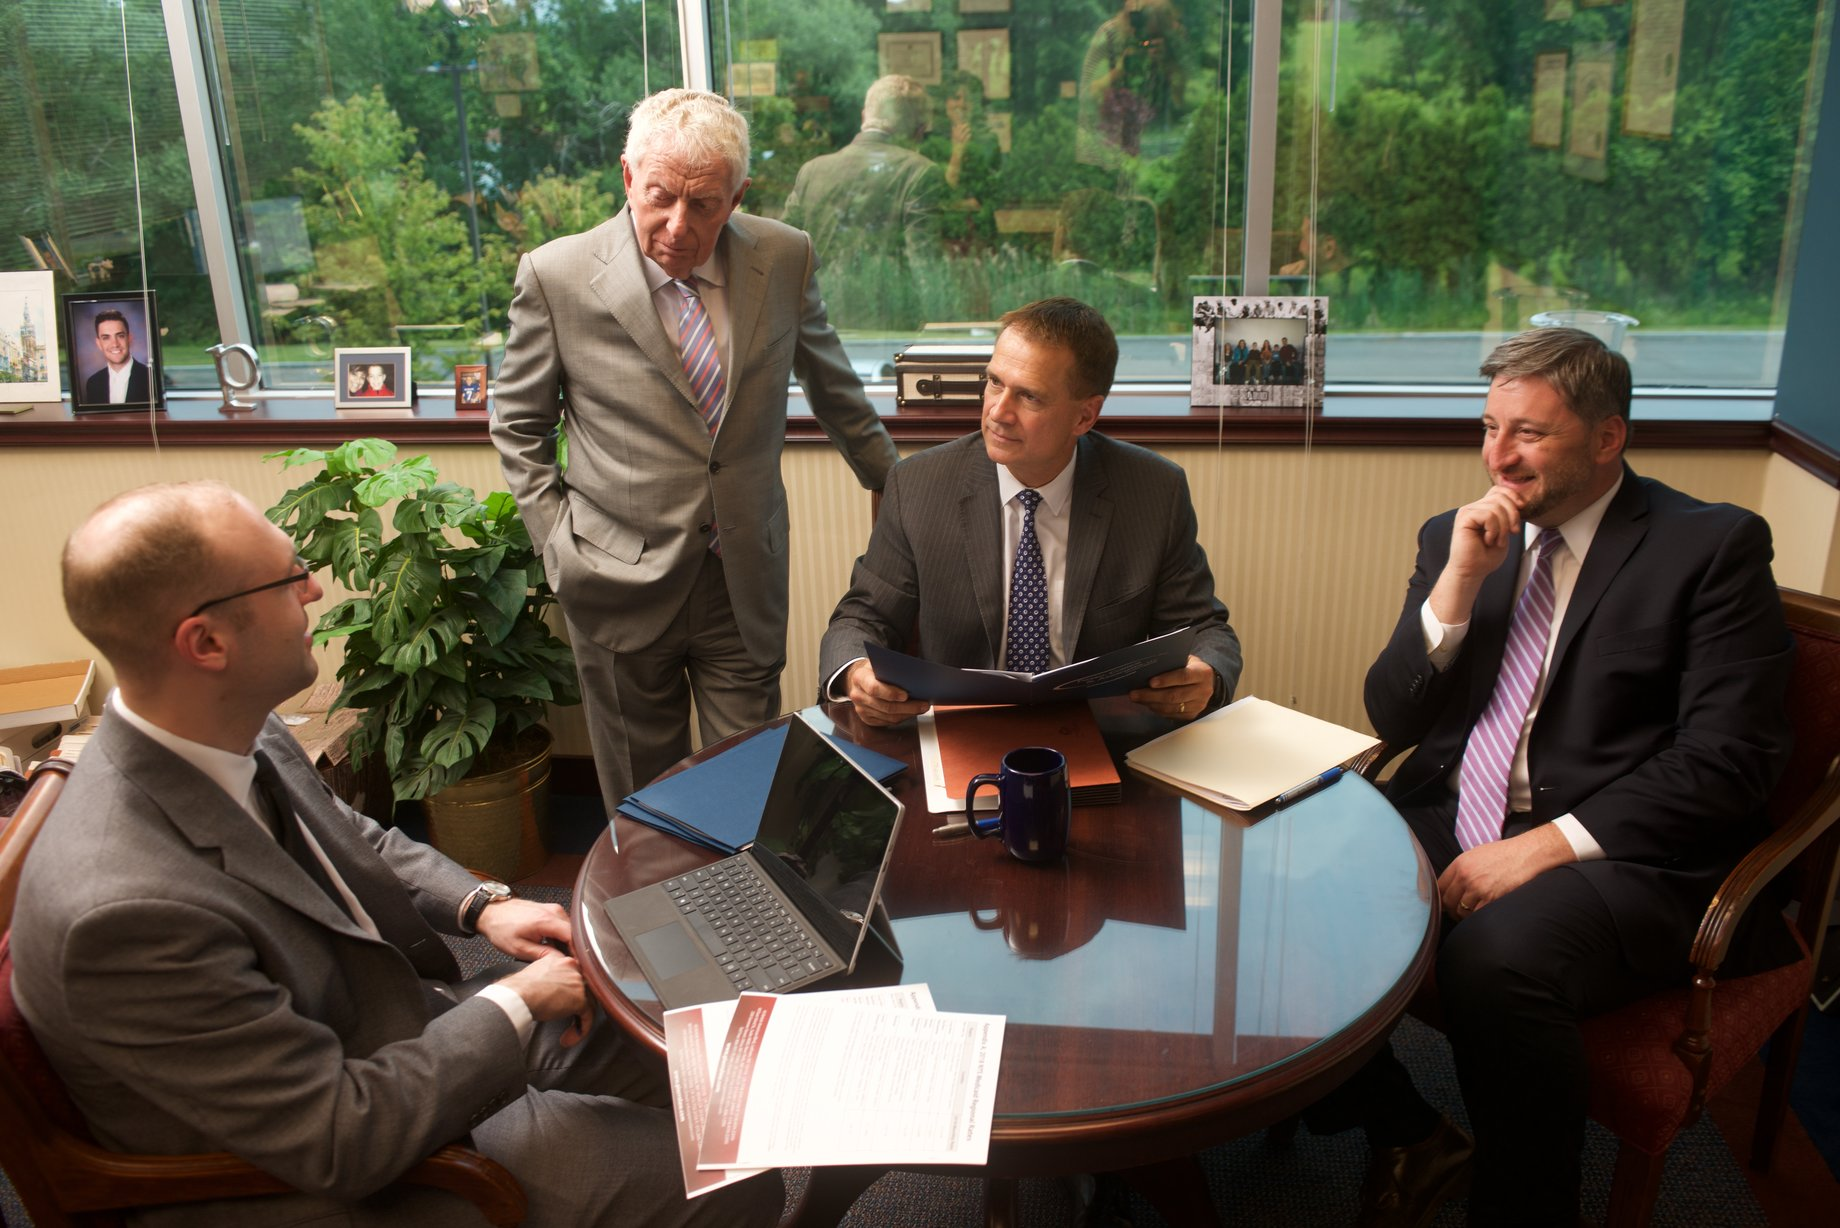 The Medicaid Planning Team:  Frank Hemming, Esq. ,  Peter Strauss, Esq. ,  Louis Pierro, Esq ., and  Aaron Connor, Esq.